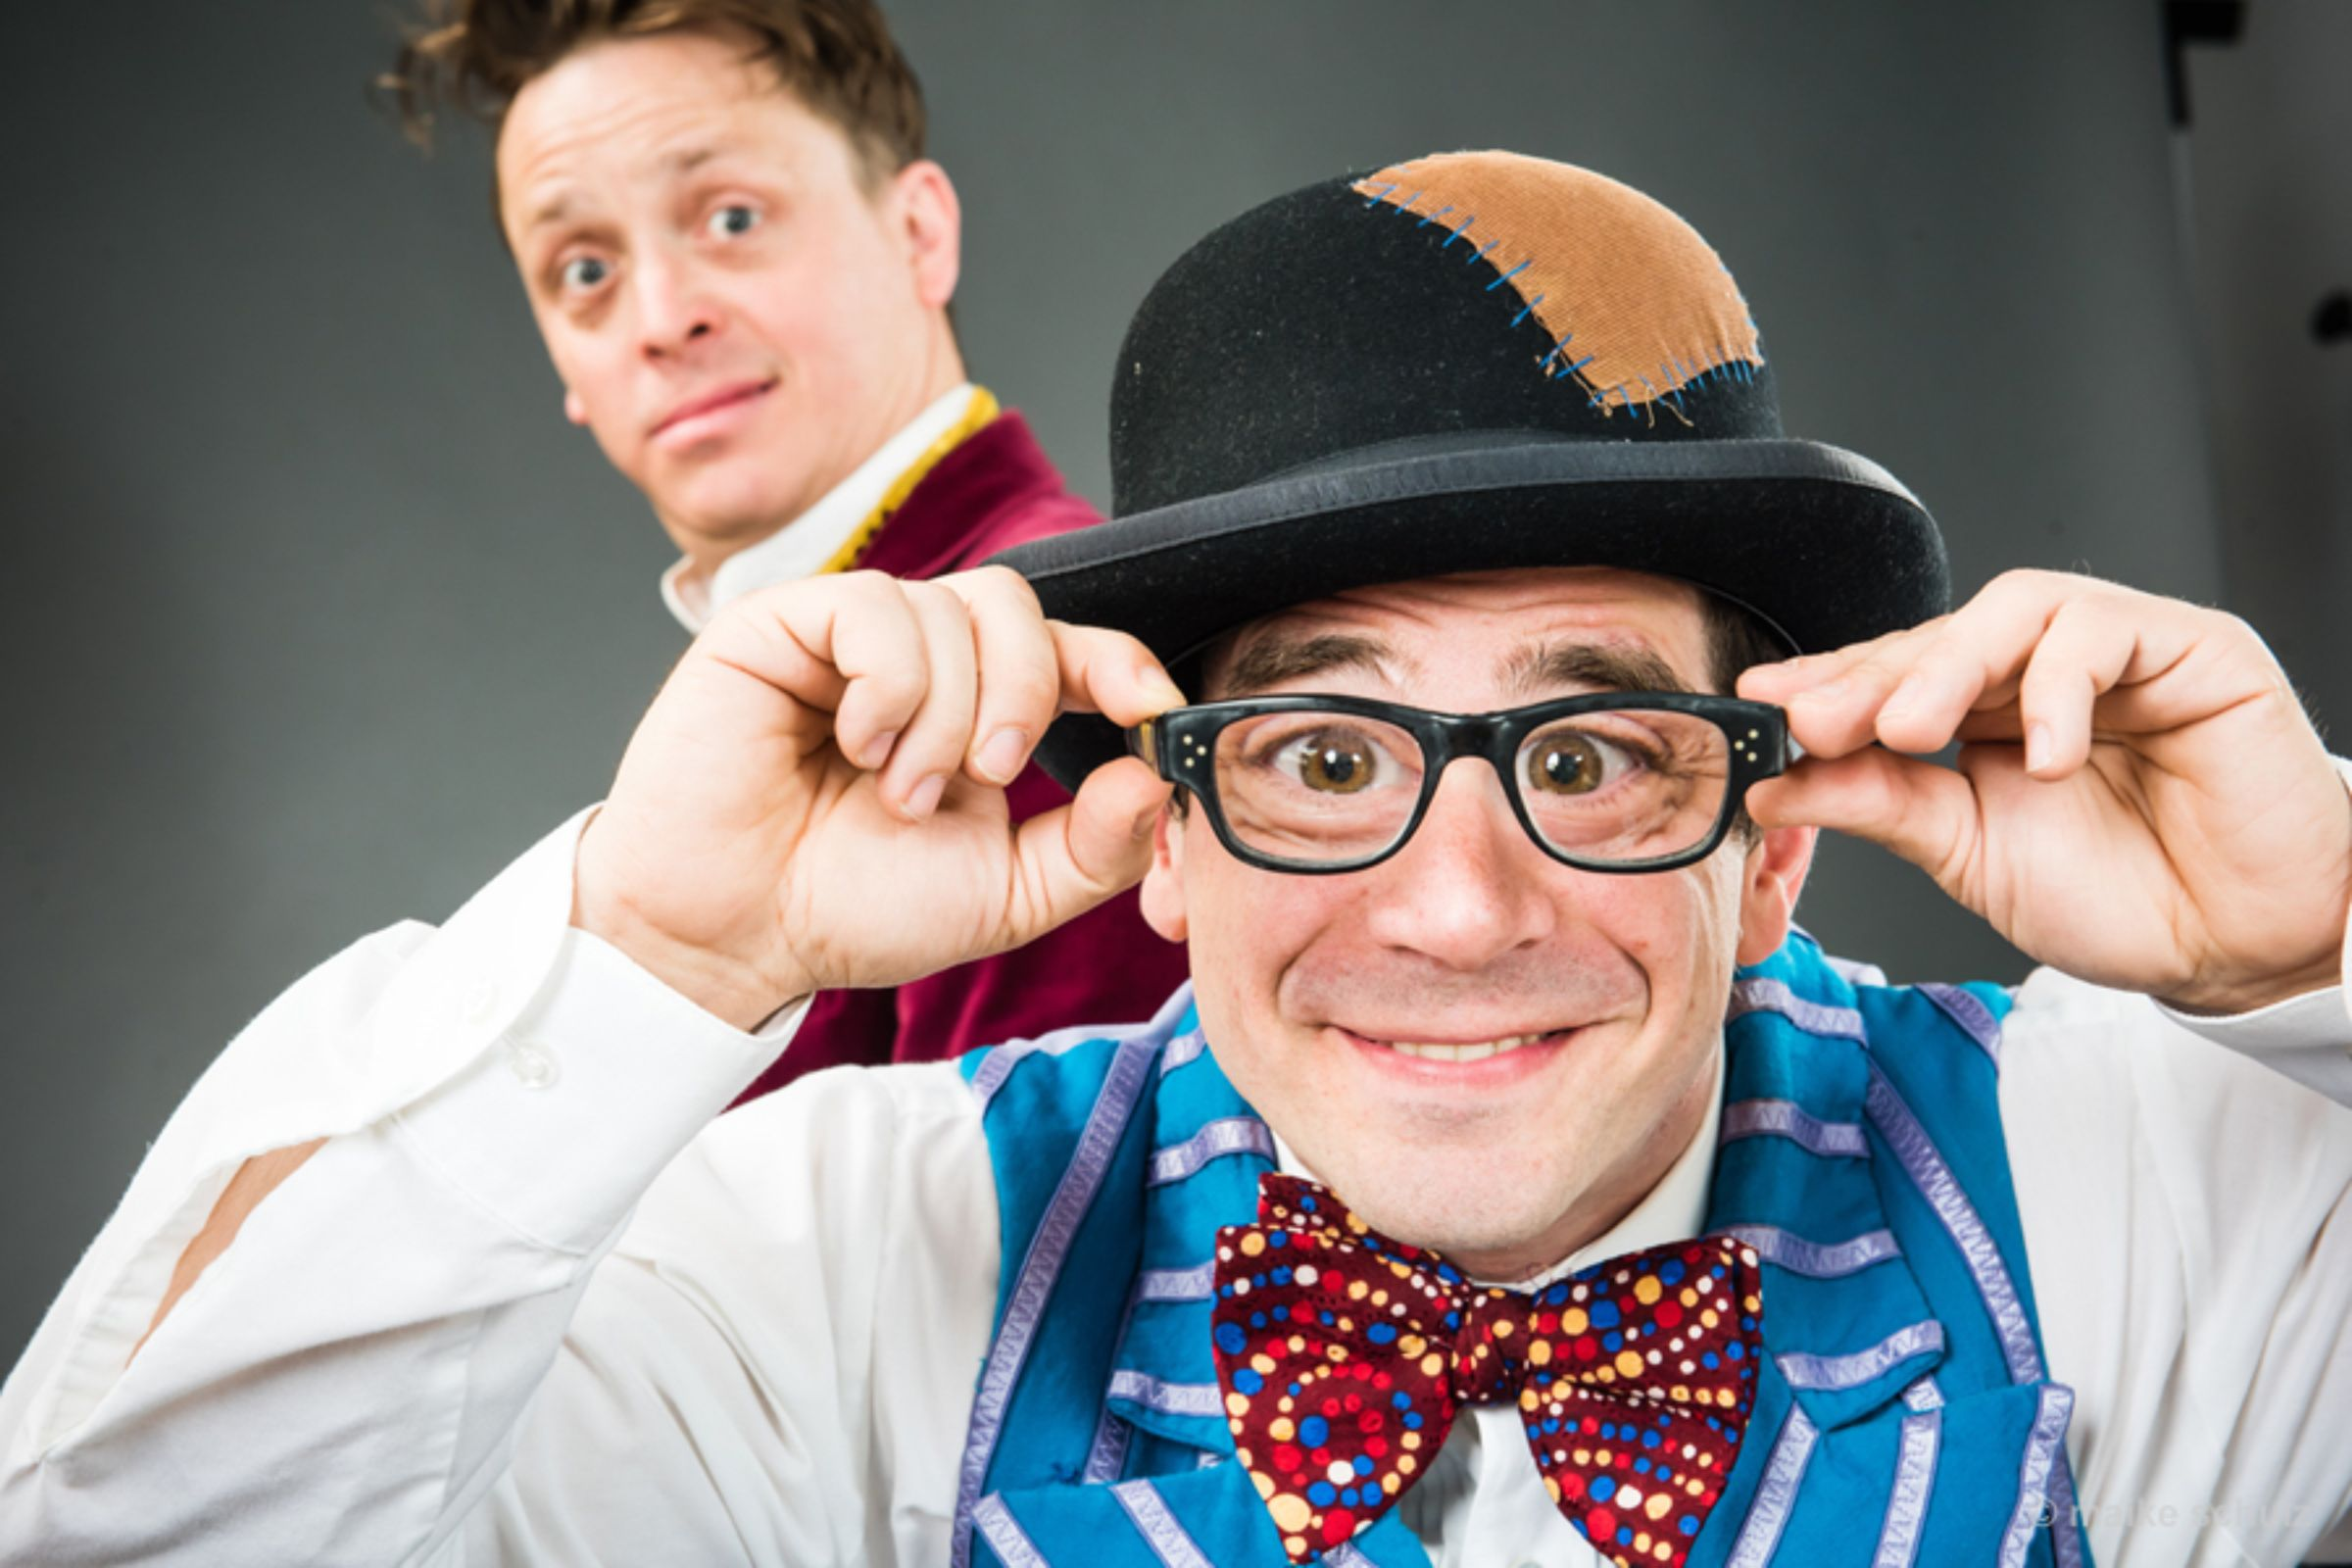 Man with glasses held to his face standing in foreground with another man in the background